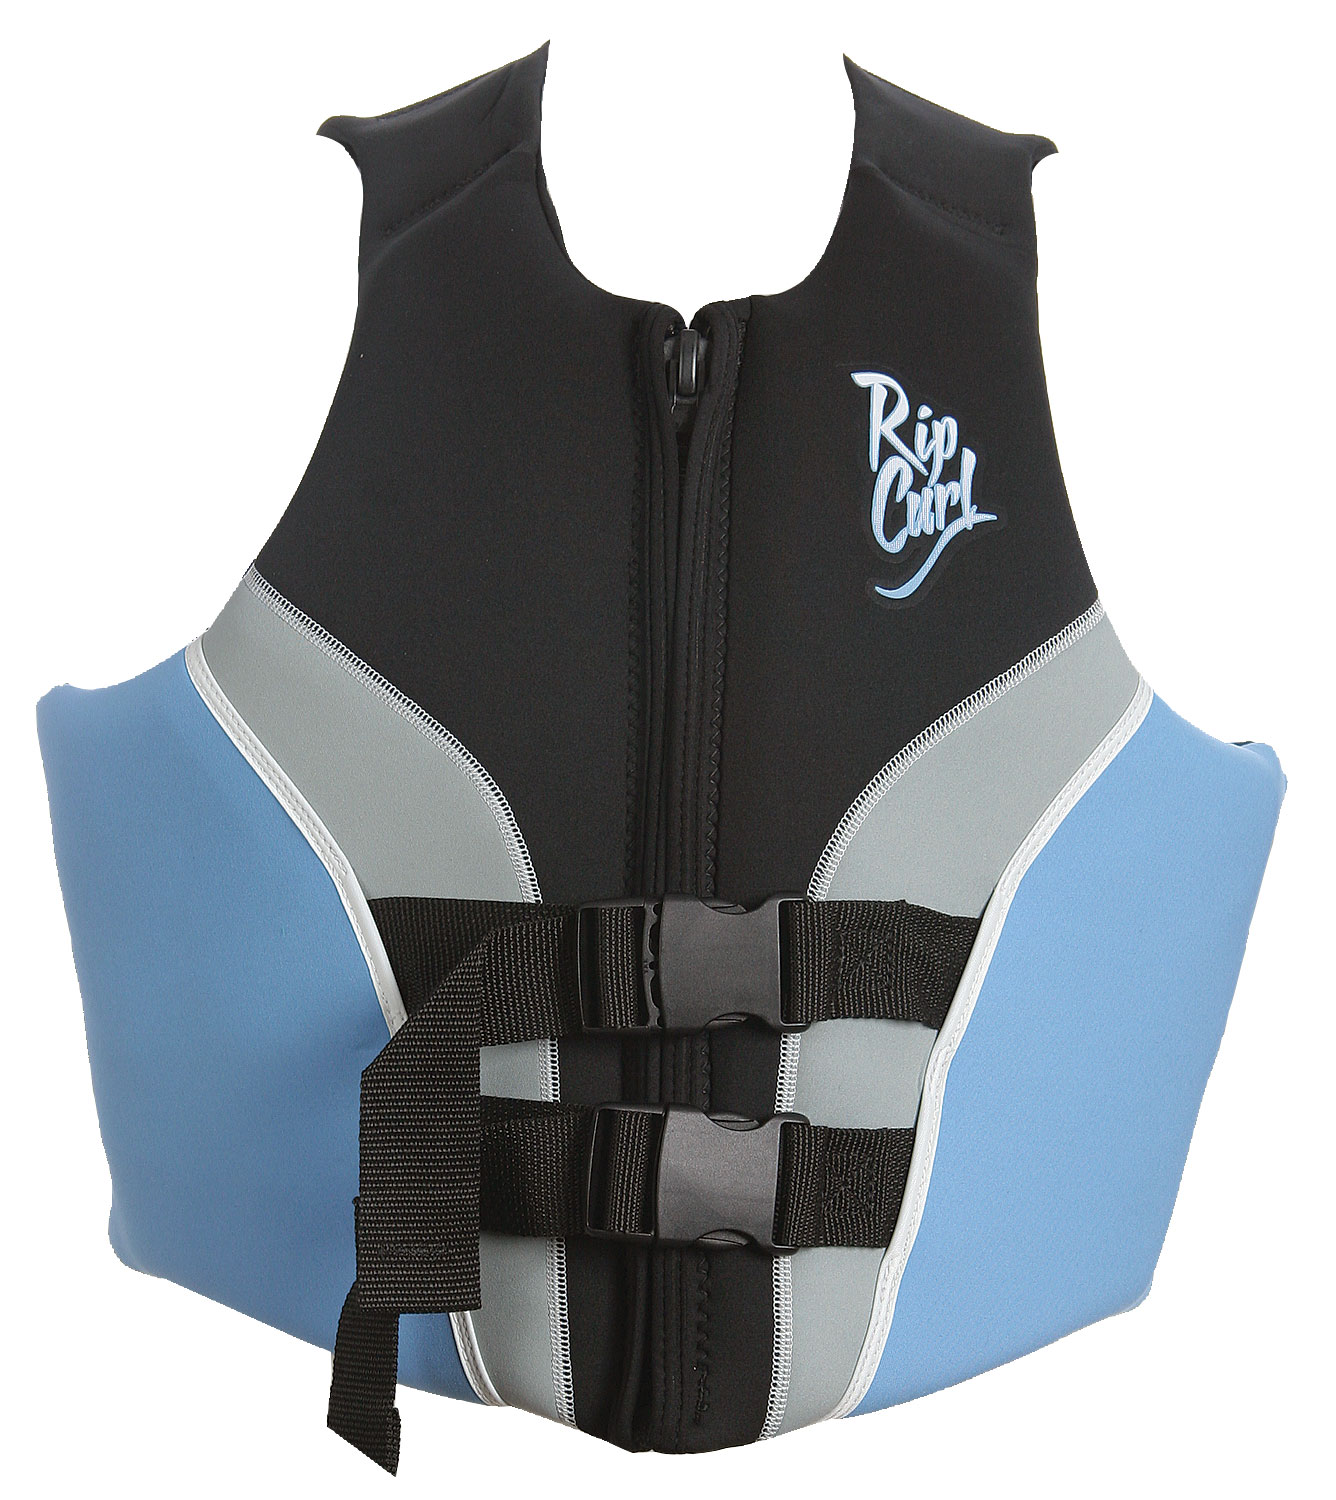 Wake If you're looking for a life vest that not only looks great but will function properly look no further than the Rip Curl Flow USCG Wakeboard Vest. This vest is designed with the wearer's comfort in mind along with a strong durability and style that is not found anywhere else on the market. This vest will stay secure on your body and won't let you down while you're wakeboarding. So if you're looking for a great functional vest the Rip Curl Flow USCG Wakeboard Vest may be what you're looking for.Key Features of The Rip Curl Flow USCG Women's Wakeboard Vest: Color: Black/Lt Blue USCG Approved Dual Internal Strap Design Lower Mesh Drainage - $46.95